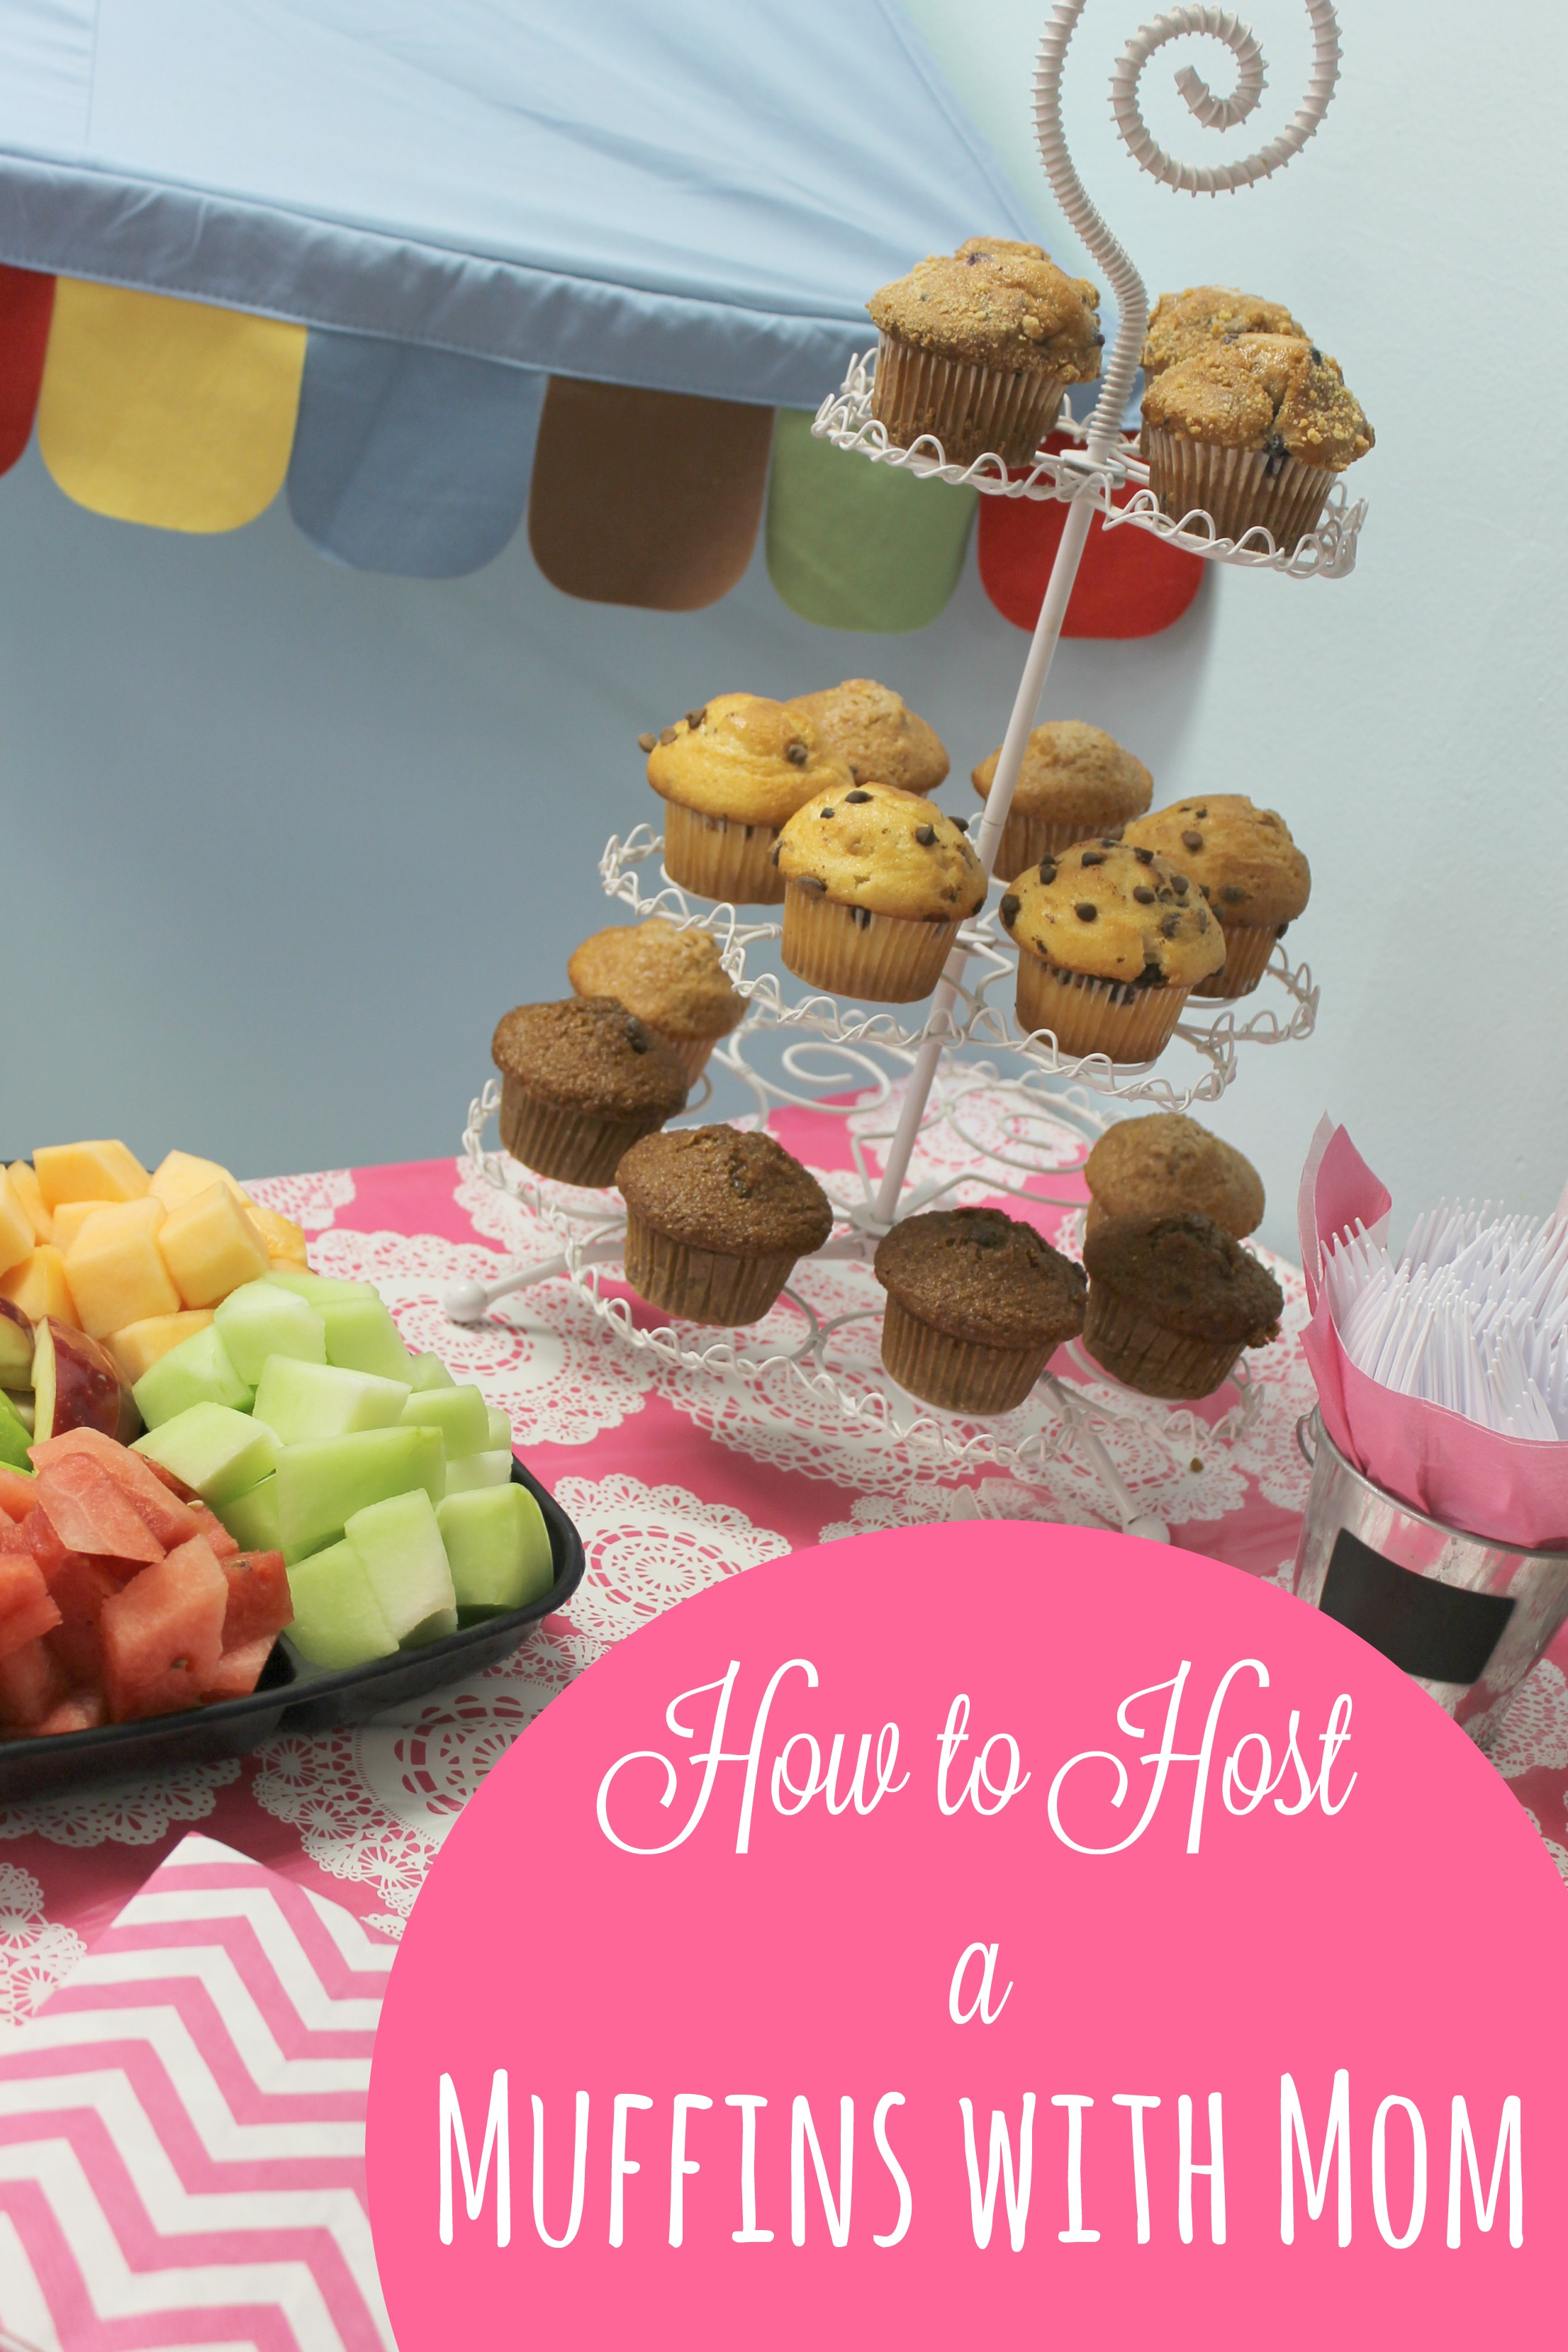 Classroom Breakfast Ideas ~ How to host a muffins with mom in your preschool classroom